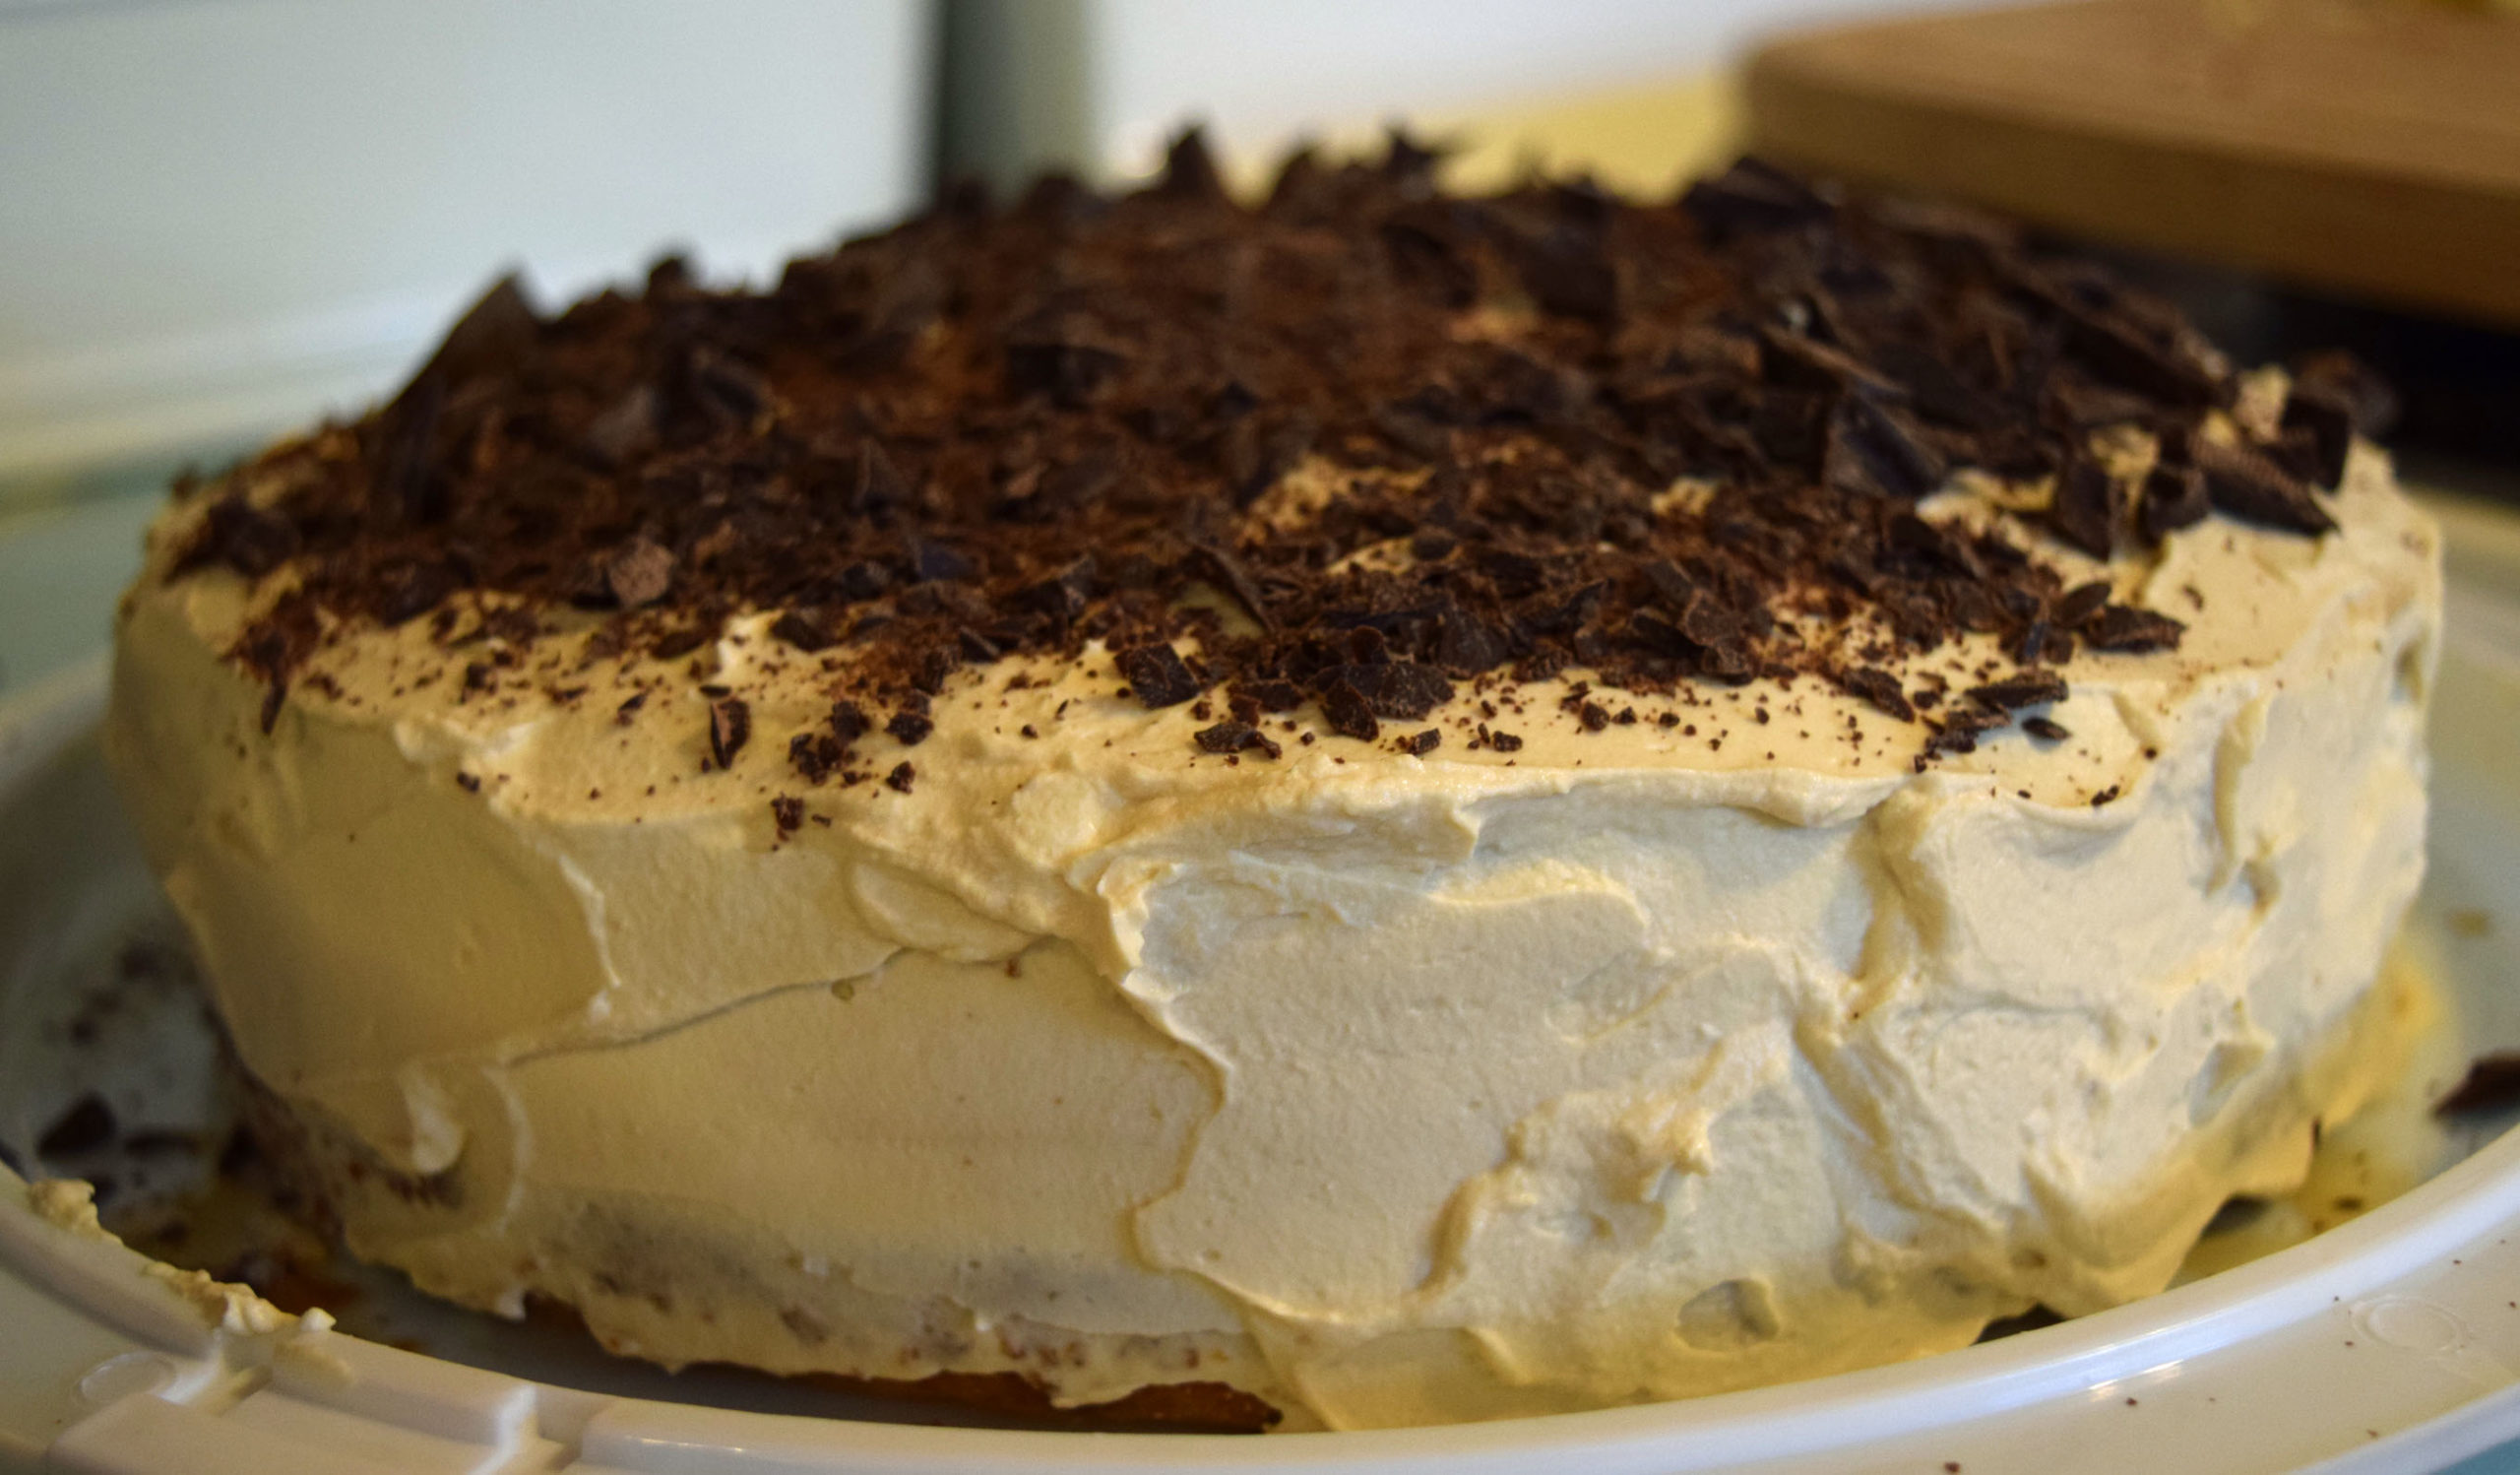 Friday Bakes in 3 Parts – Tiramisu Cake